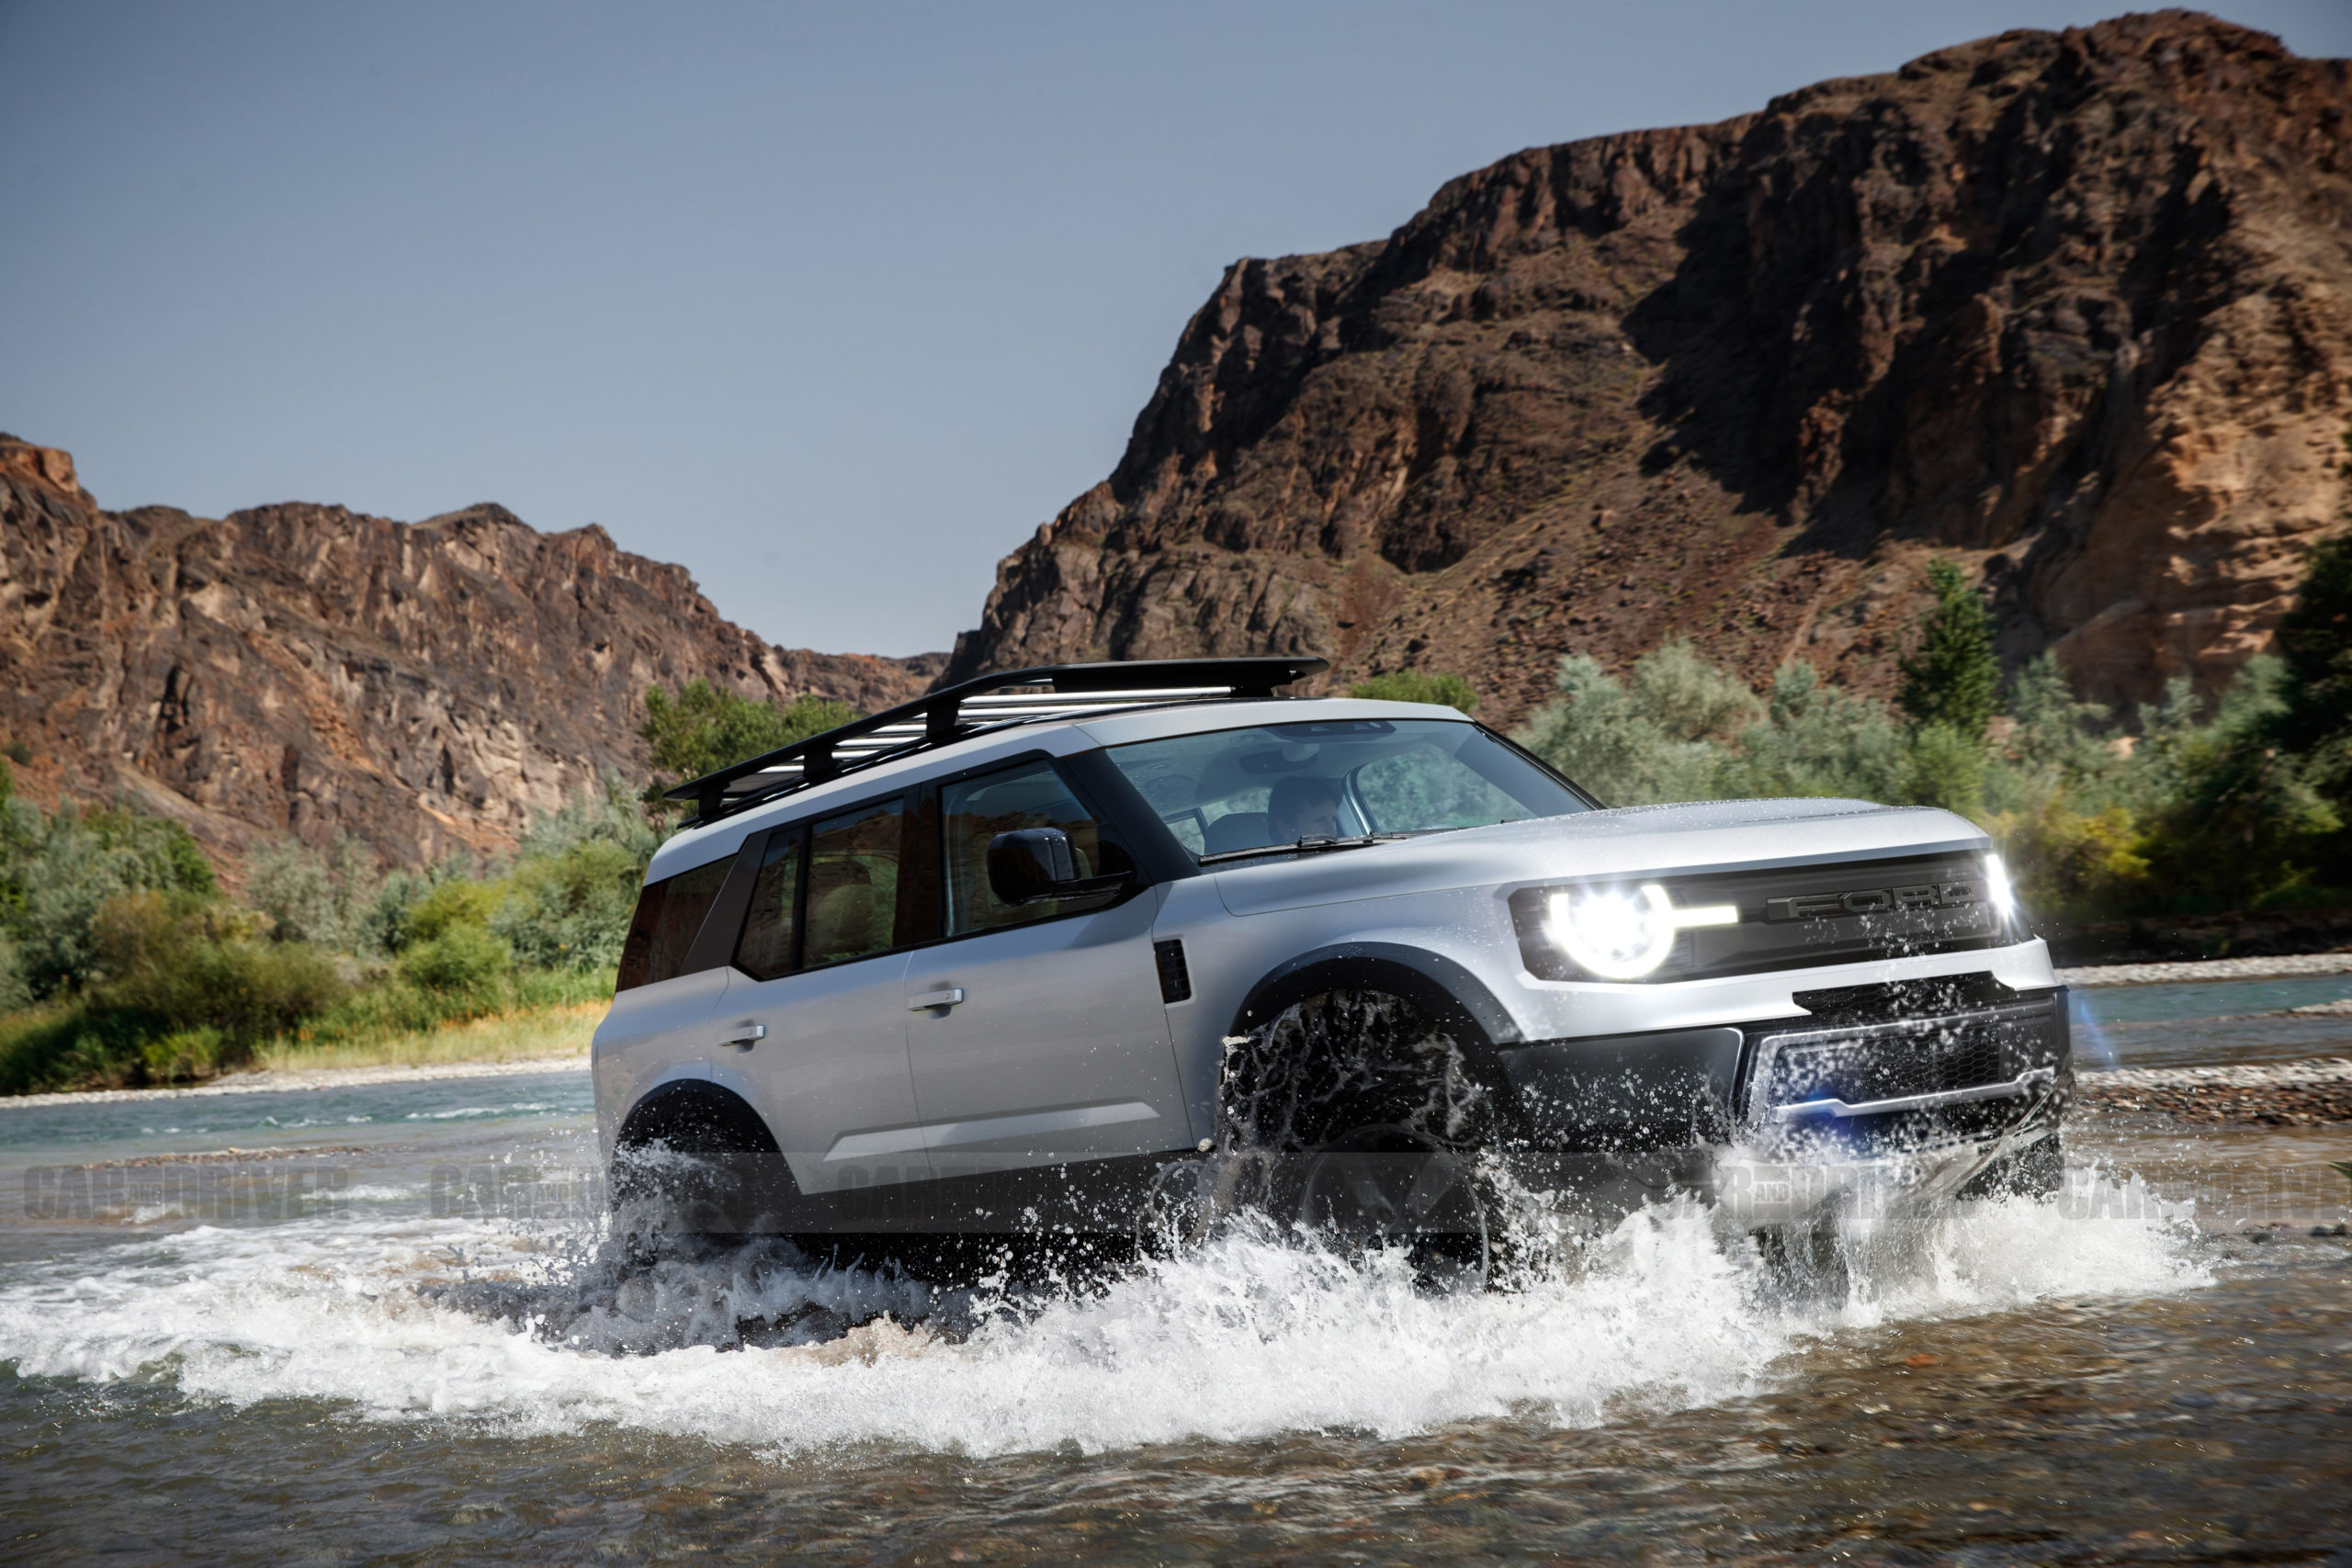 2021 Ford Bronco Sport Confirmed: What We Know So Far